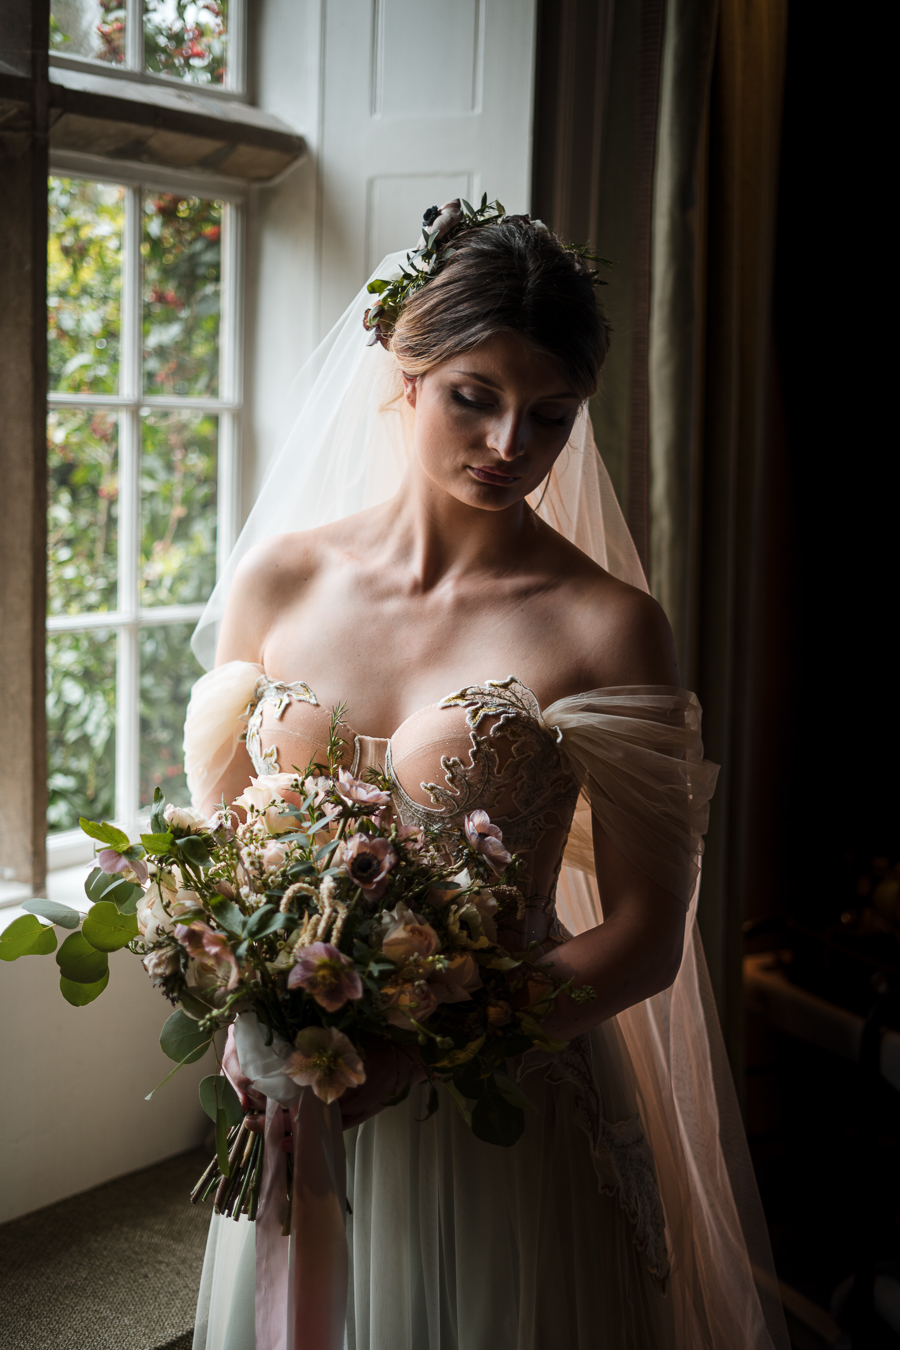 Candyfloss romance from the secret garden at Barnsley House, image credit Red Maple Photography (4)